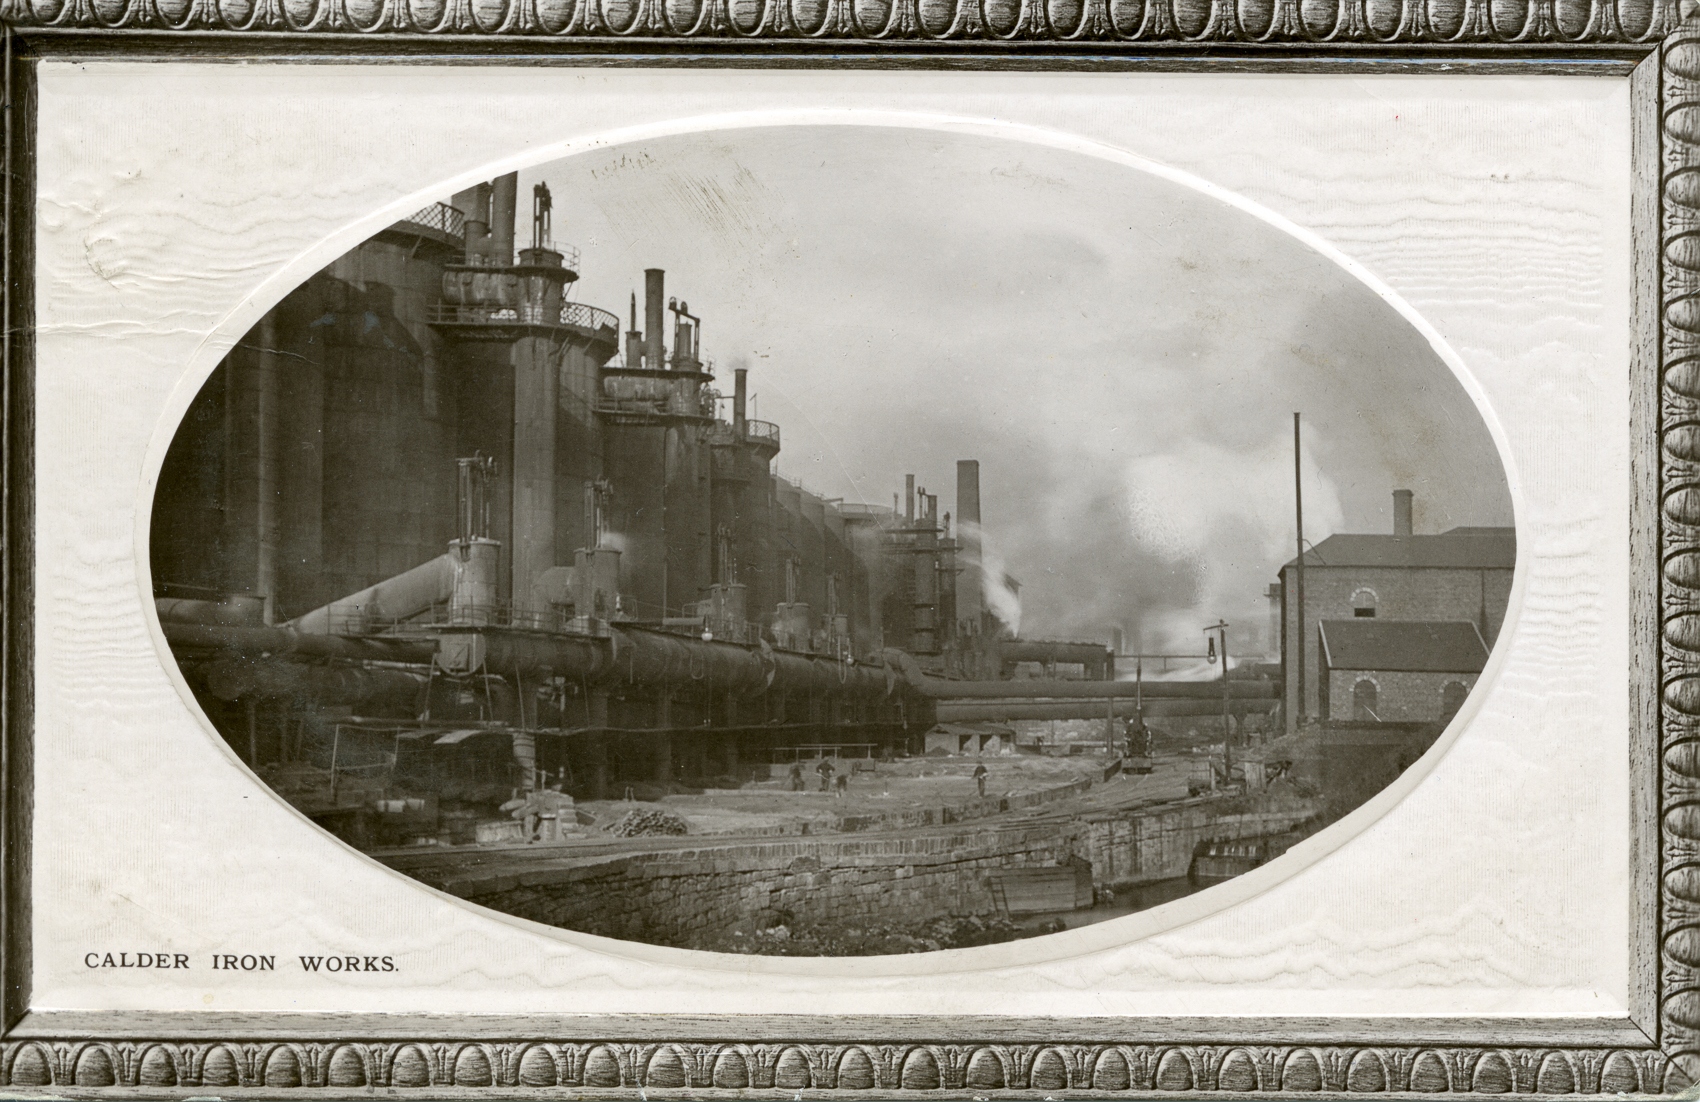 The Calder Iron Works, Coatbridge seen from across the North Calder Water around 1900. Built around 1795 this was the Monklands' first pig iron works. After David Mushet was made manager in 1800 this was the first ironworks to make use of the local blackband ironstone. It was also one of the first ironworks to use James Beaumont Neilson's Hot Blast process. The works closed in 1921.